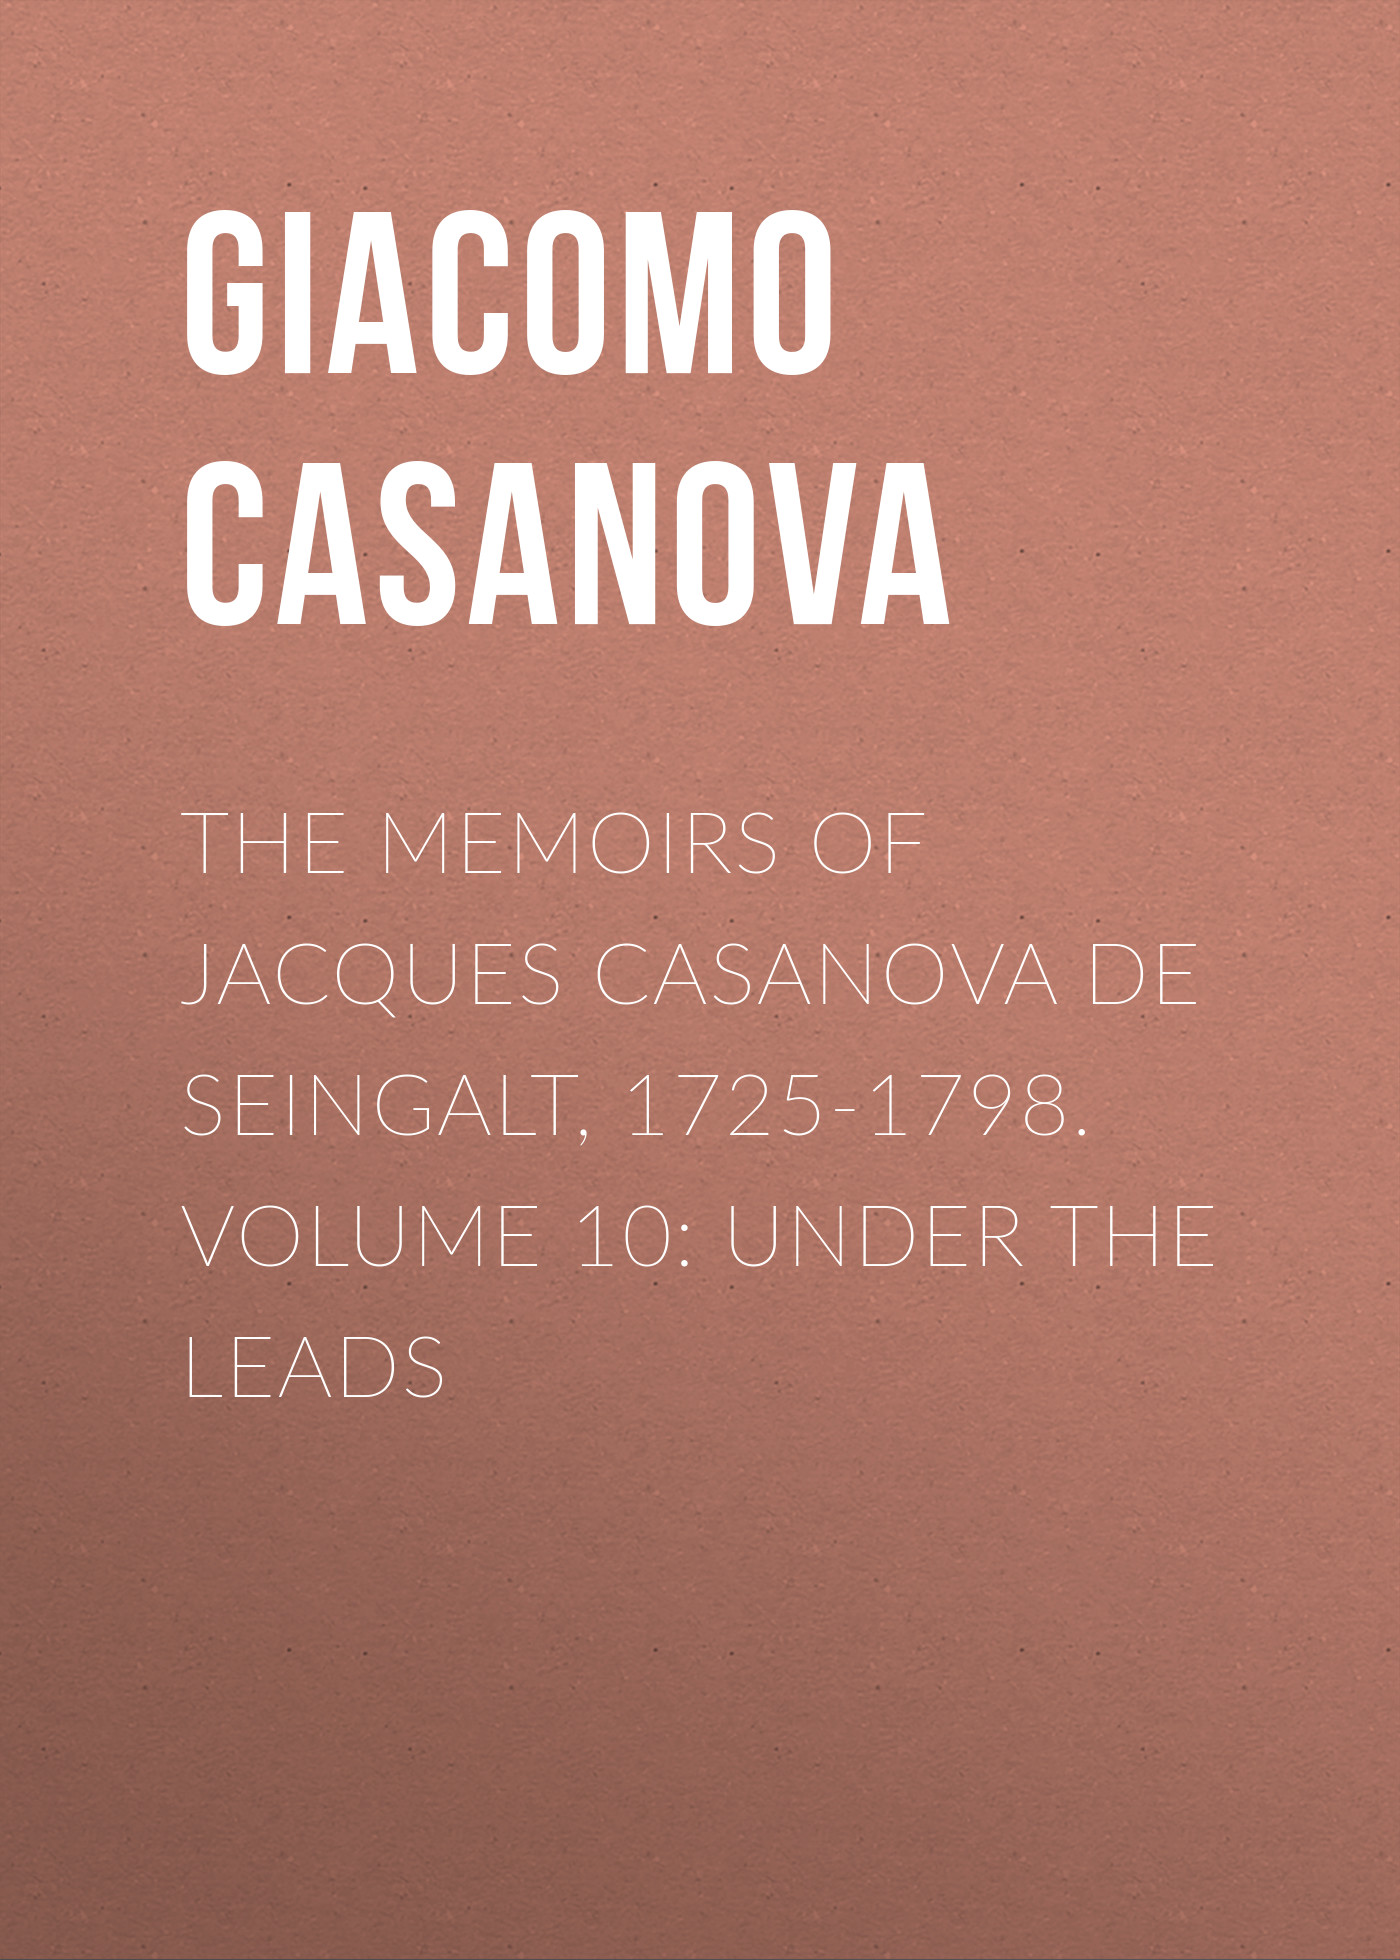 Giacomo Casanova The Memoirs of Jacques Casanova de Seingalt, 1725-1798. Volume 10: under the Leads giacomo casanova the memoirs of jacques casanova de seingalt 1725 1798 volume 29 florence to trieste